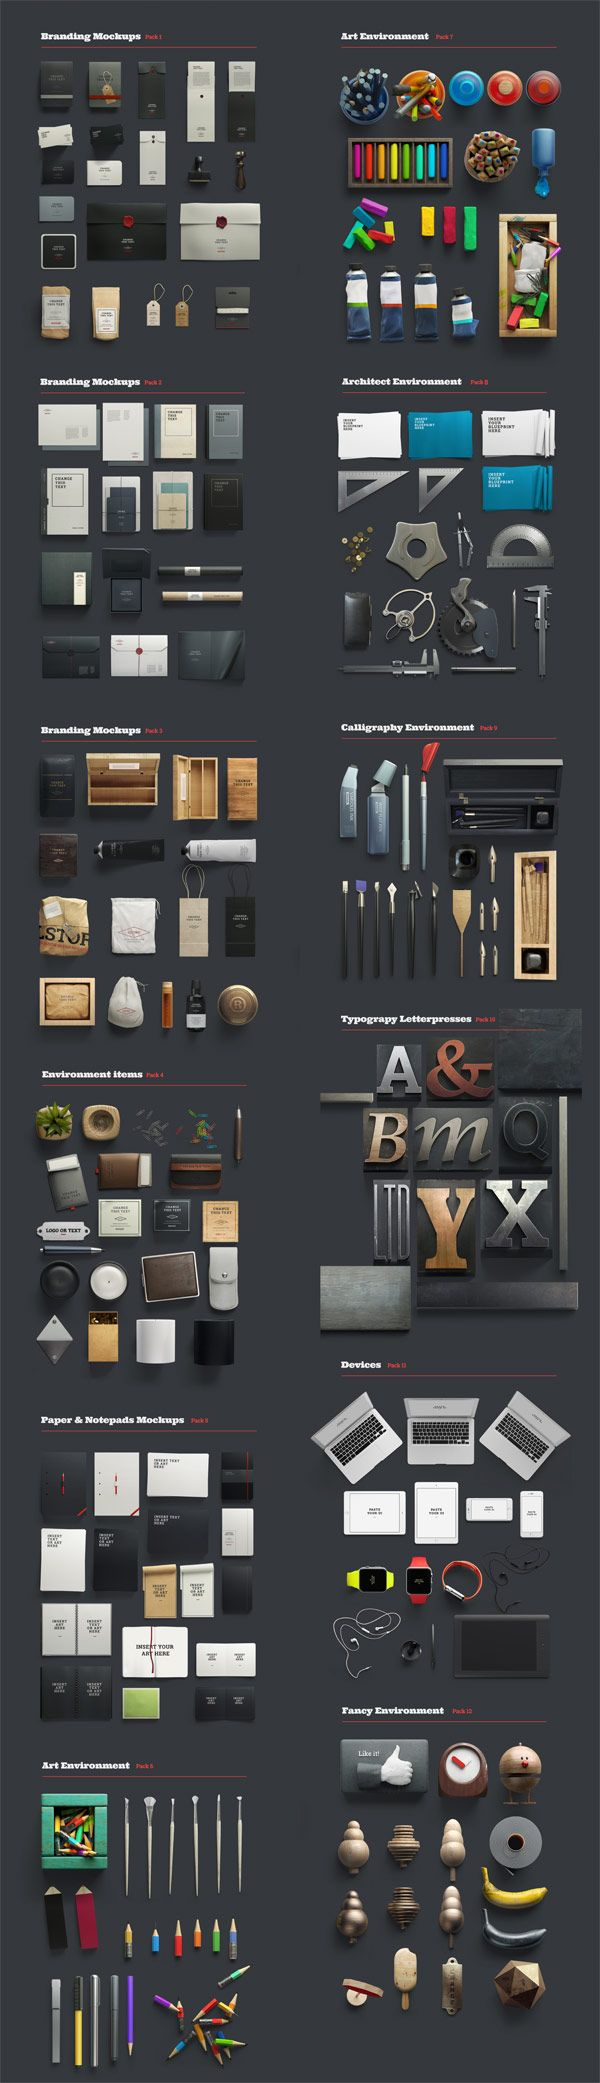 All the included items and objects from all 12 categories.